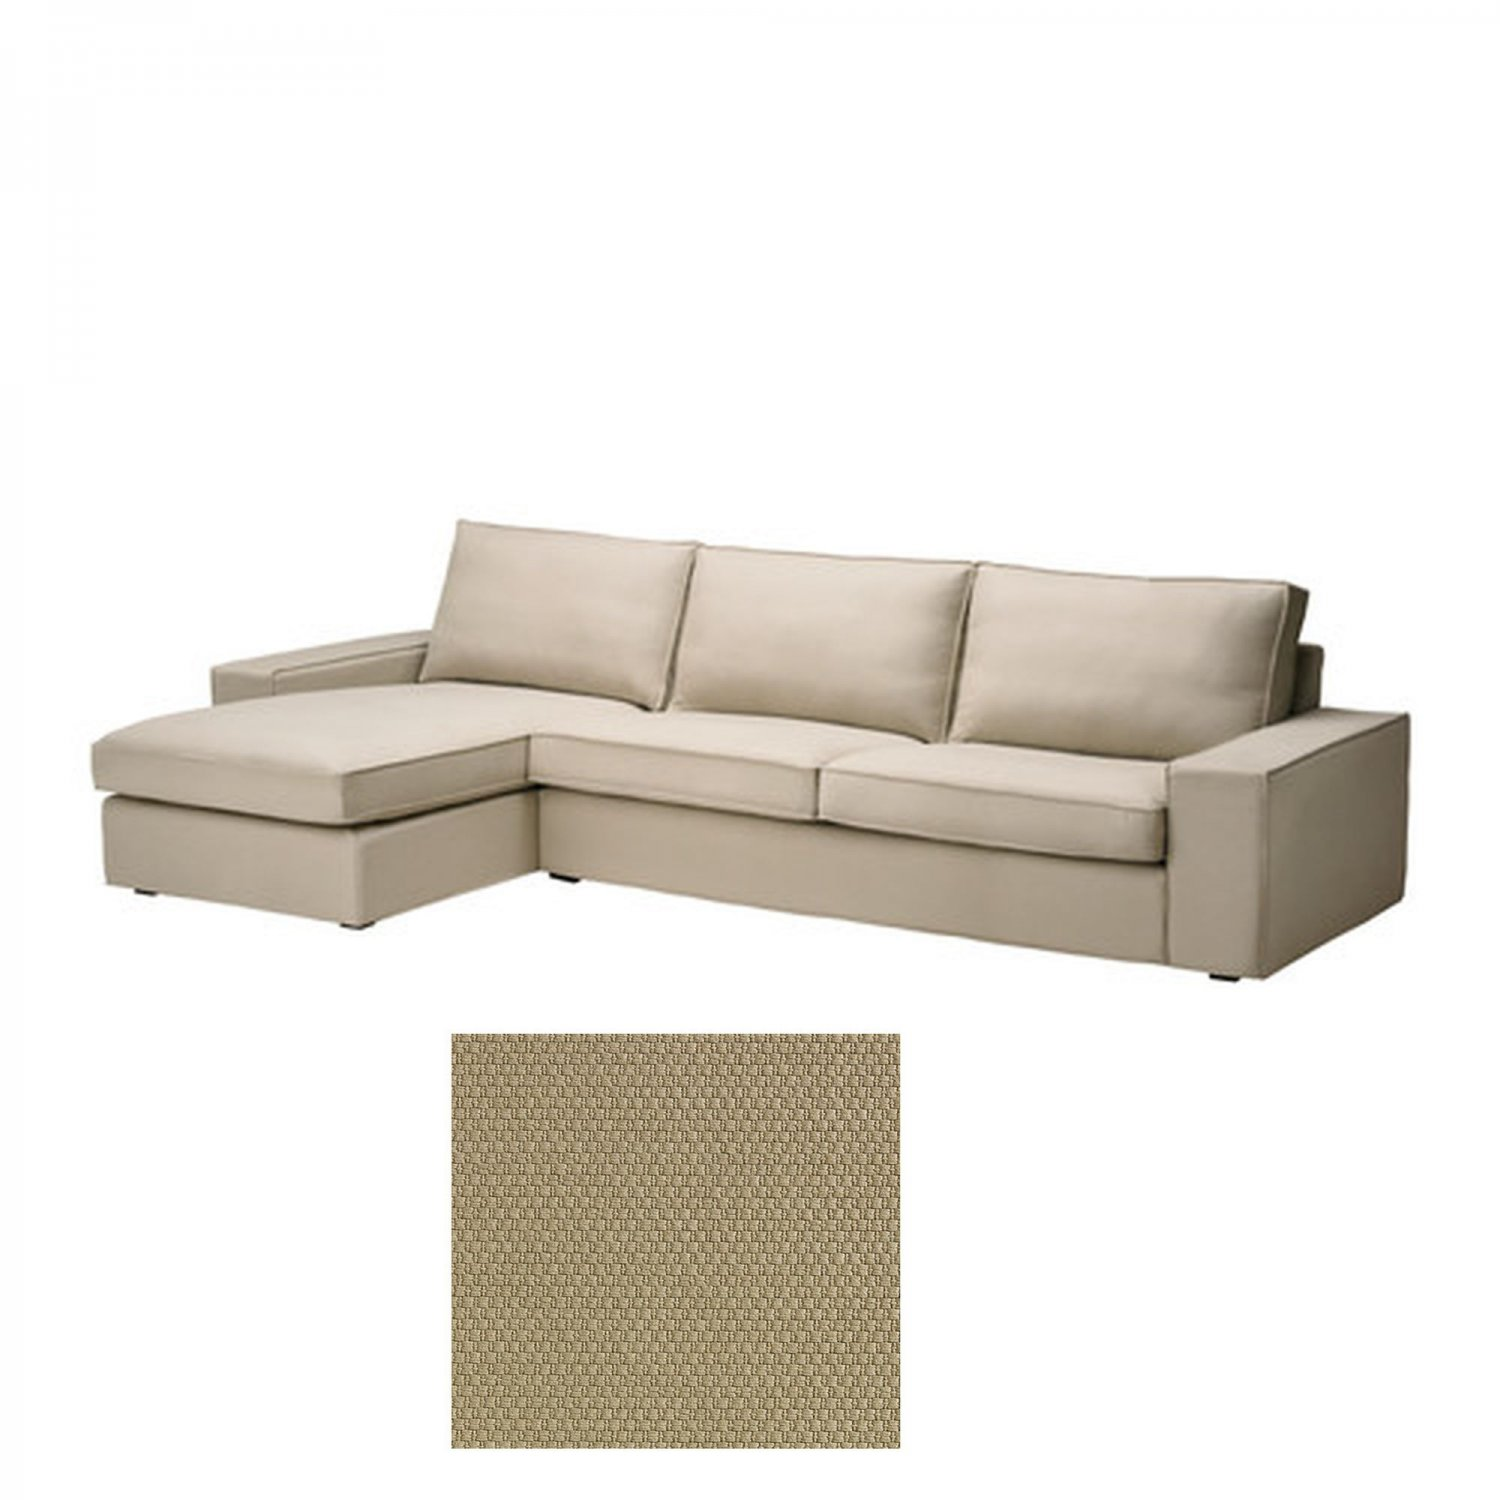 kivik sofa chaise country french bed ikea 3 seat w longue slipcover cover